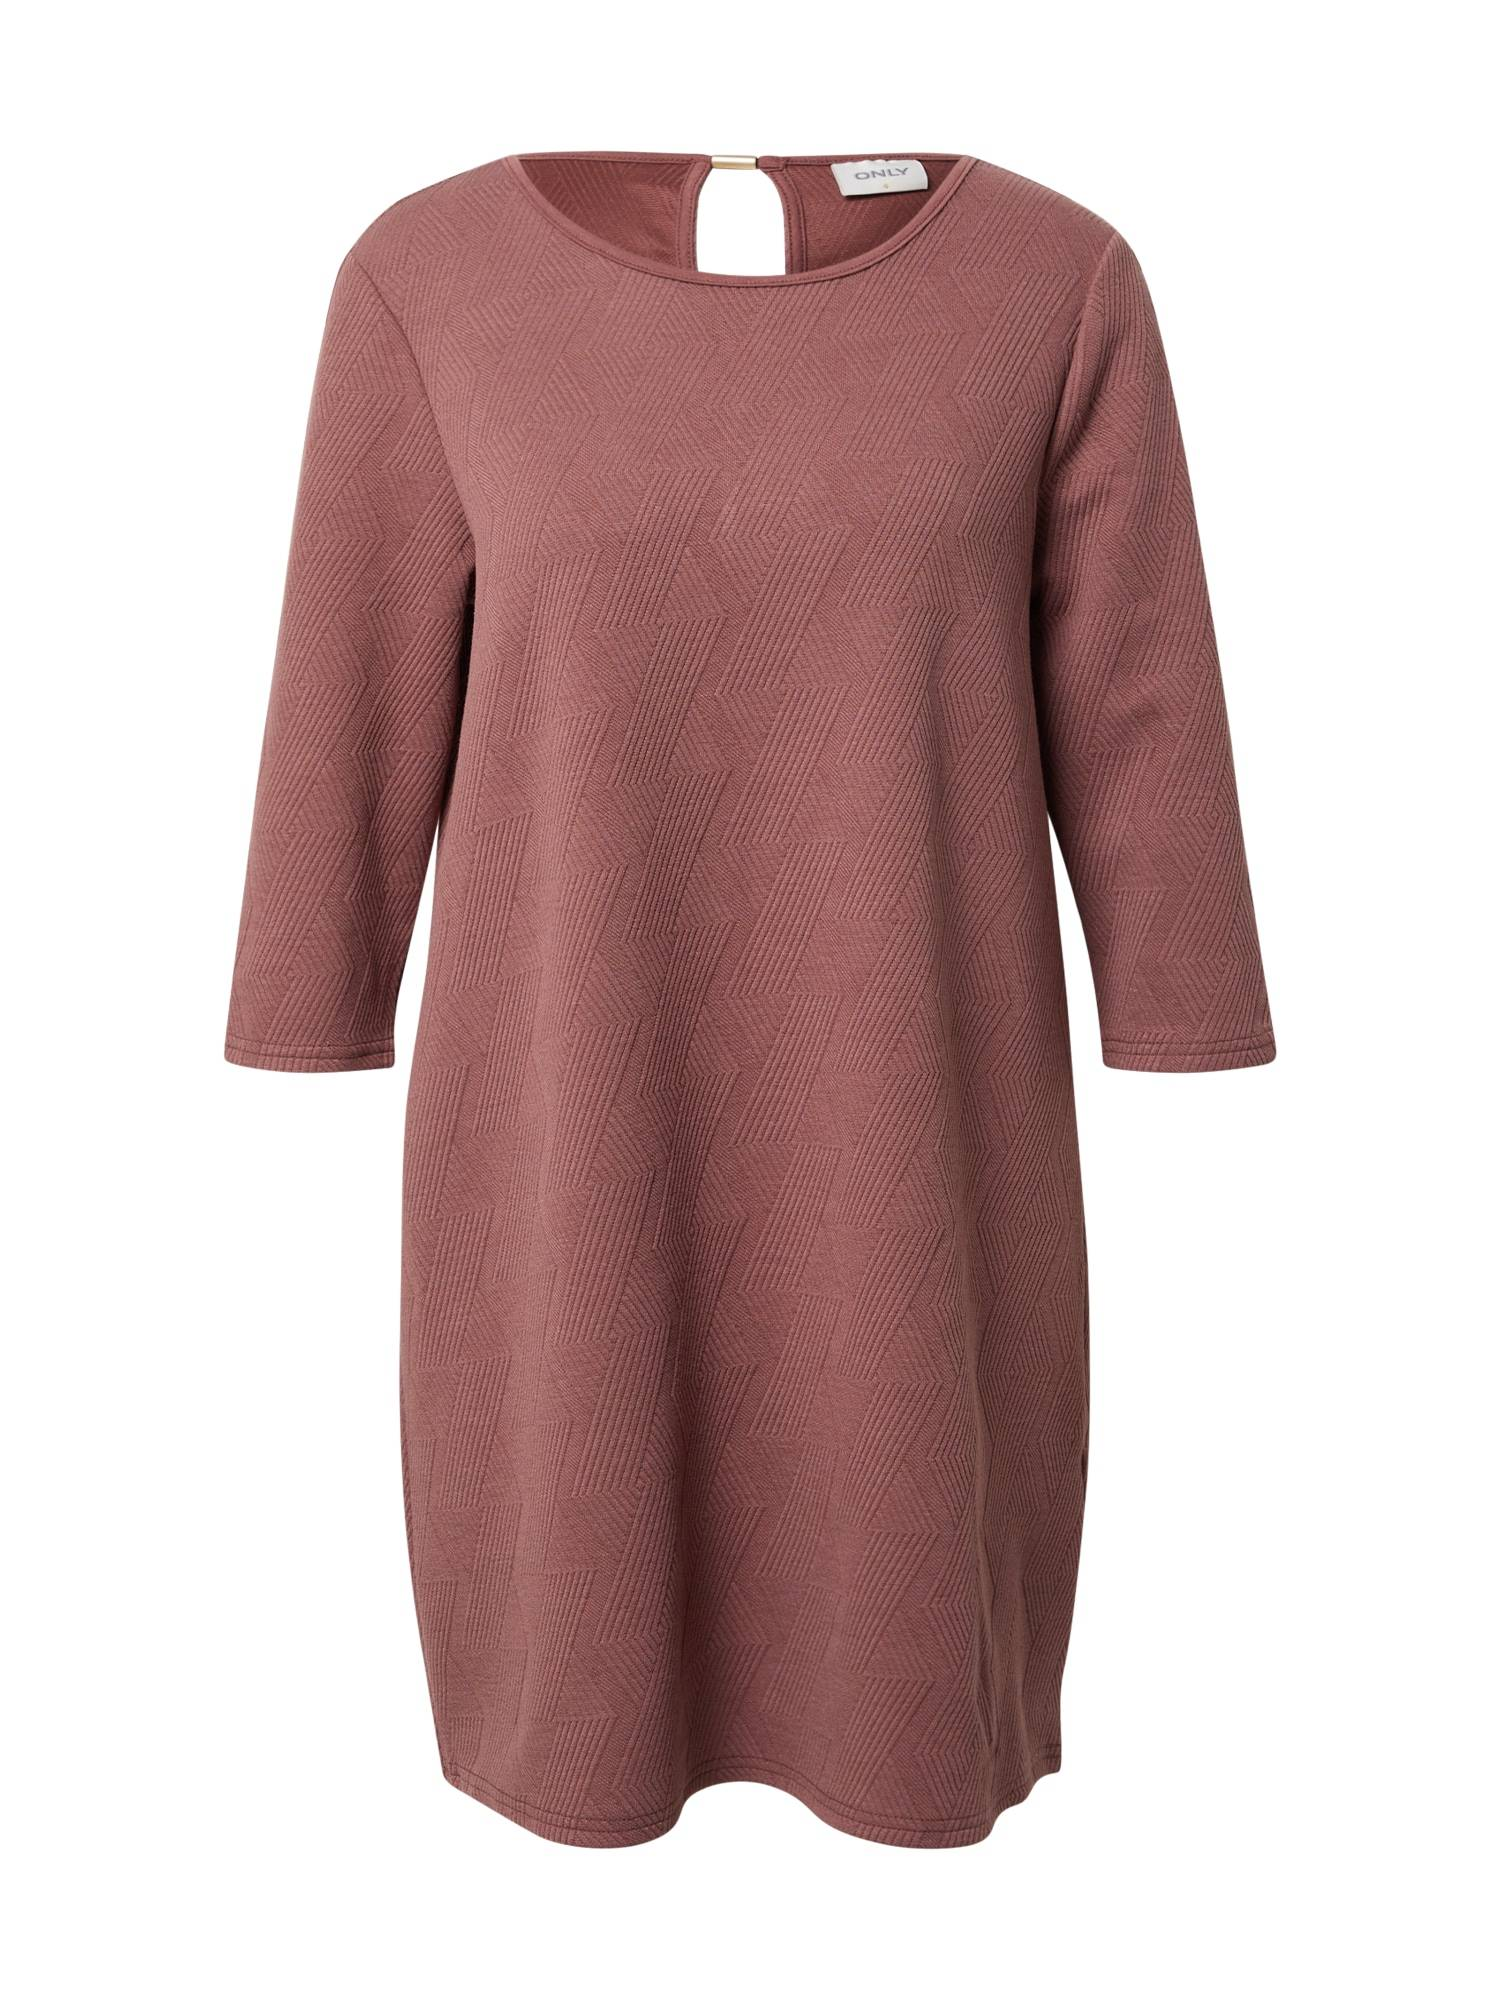 ONLY Robe 'SOJA'  - Rose - Taille: M - female